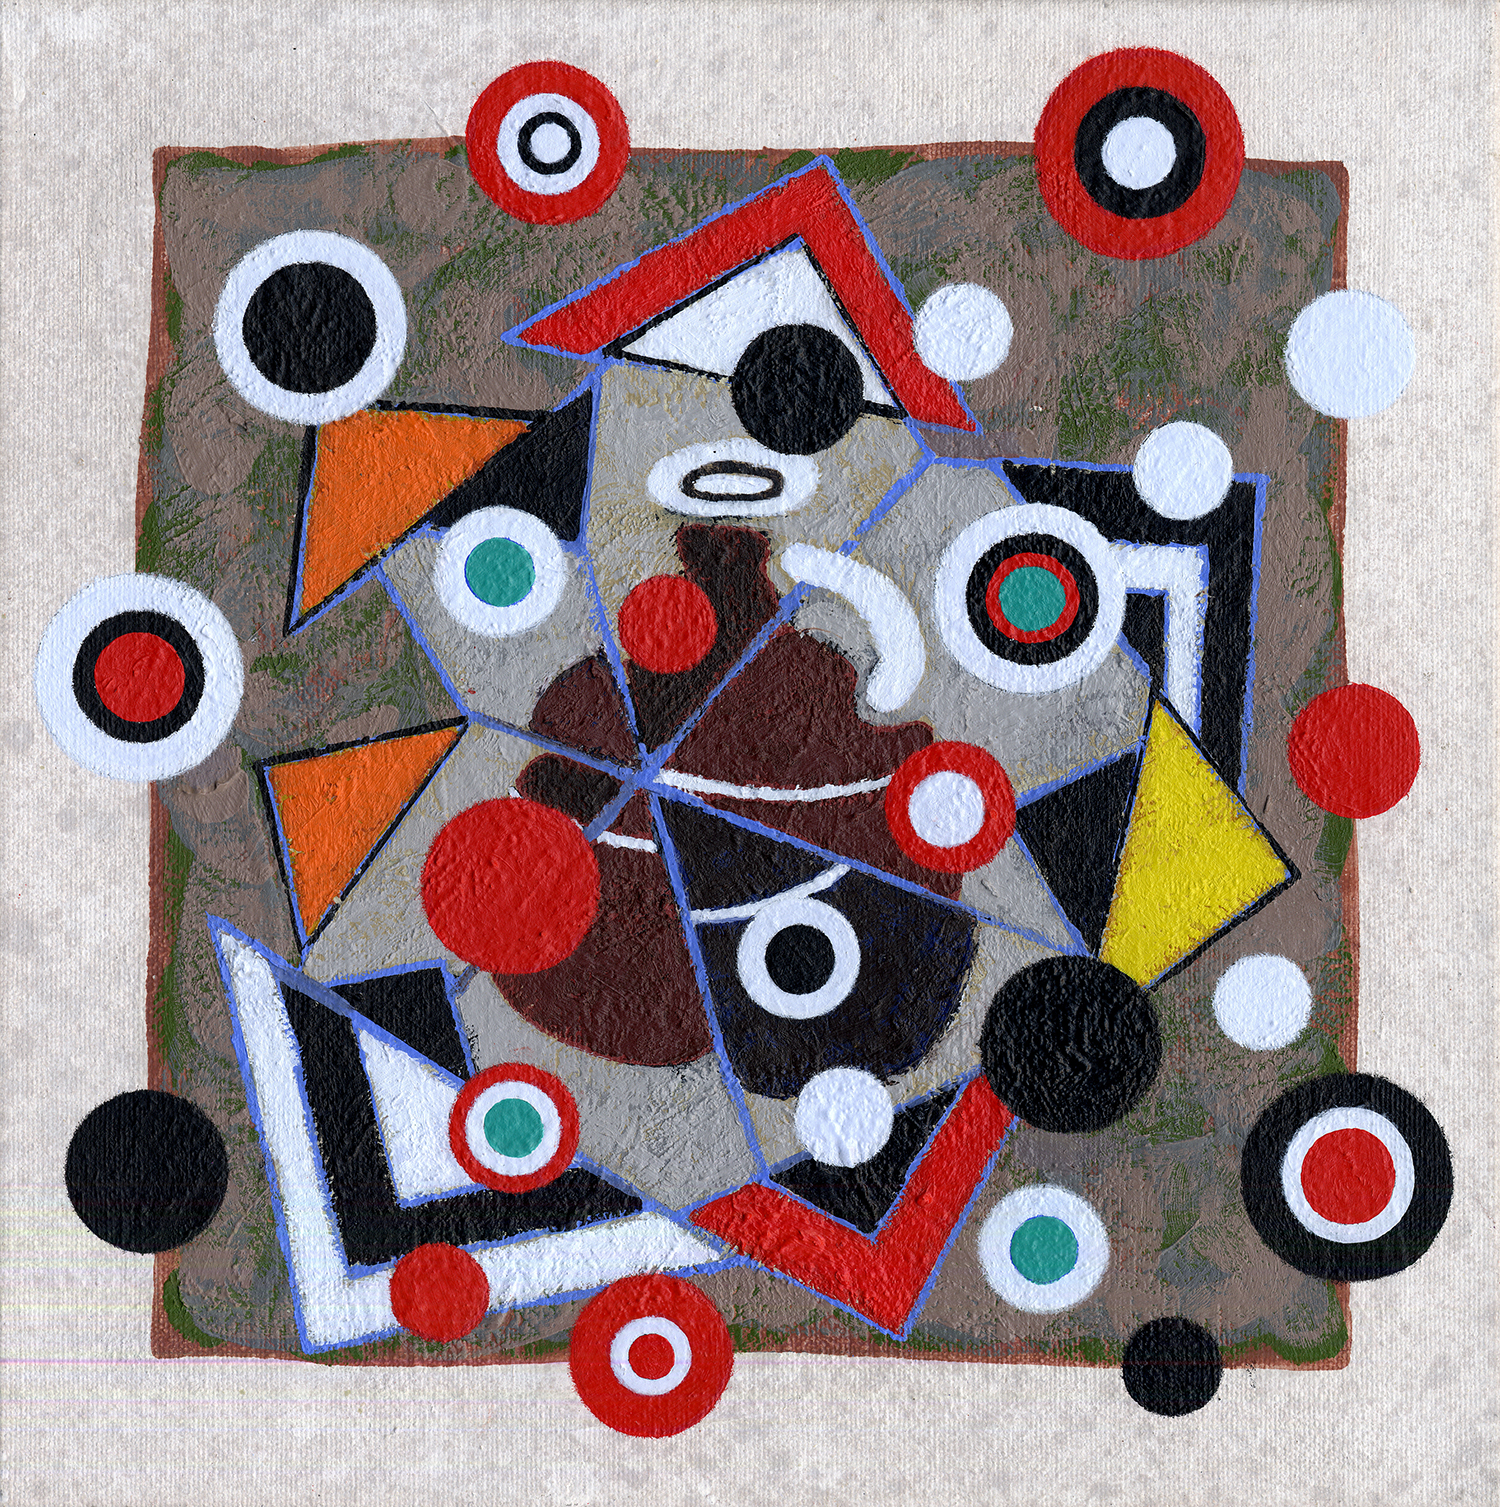 S184/Sq64   2012, oil and wax on canvas, 12 x 12 in.